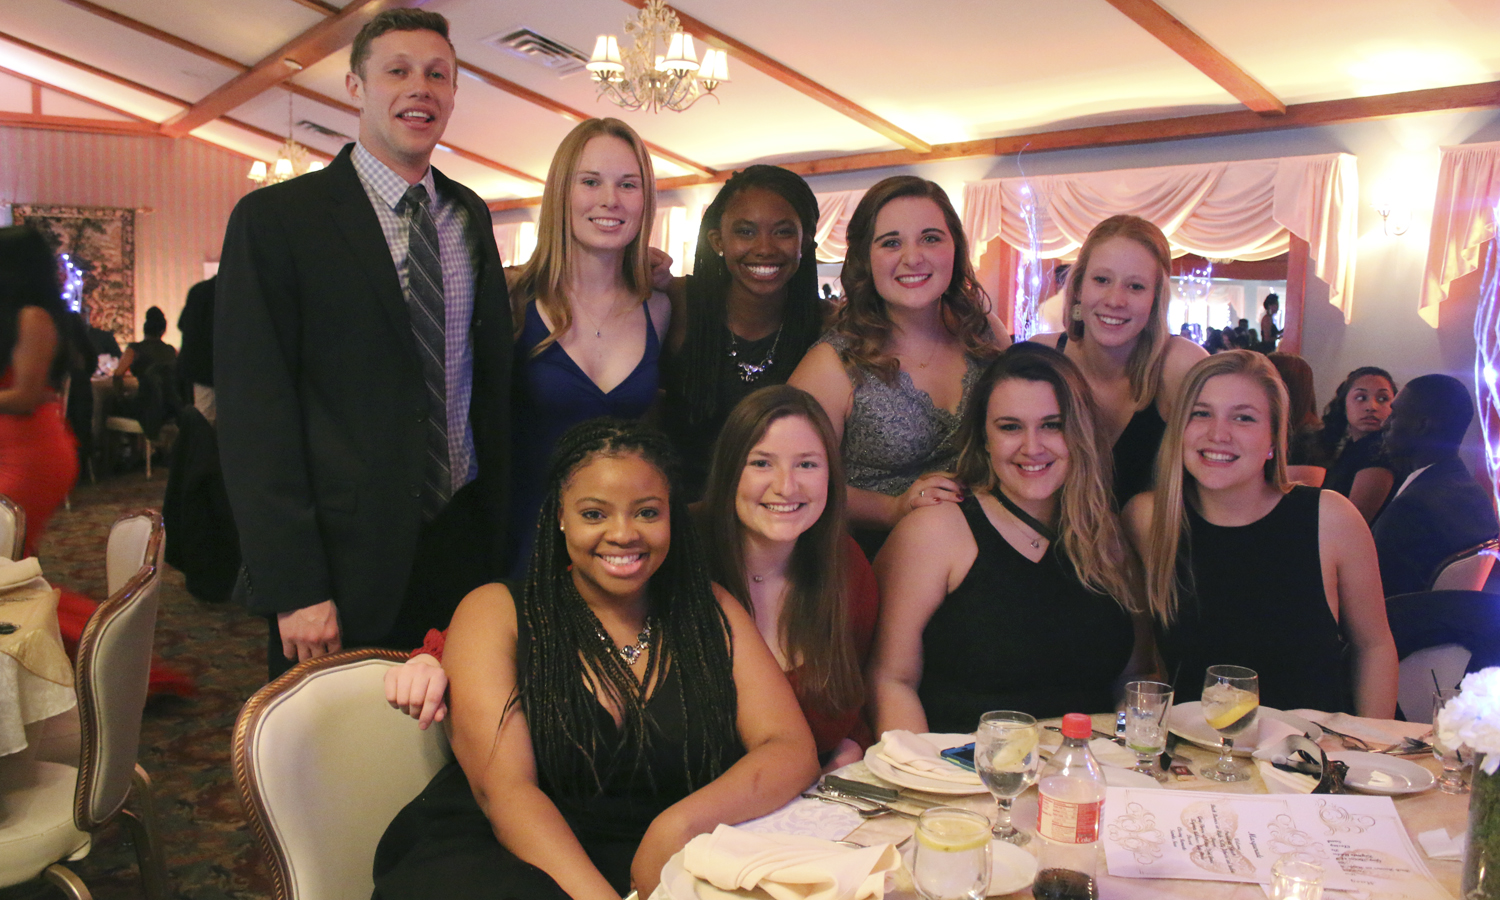 Students gather for a group photo during the Caribbean Student Association's annual Masquerade Ball at the Belhurst Castle.